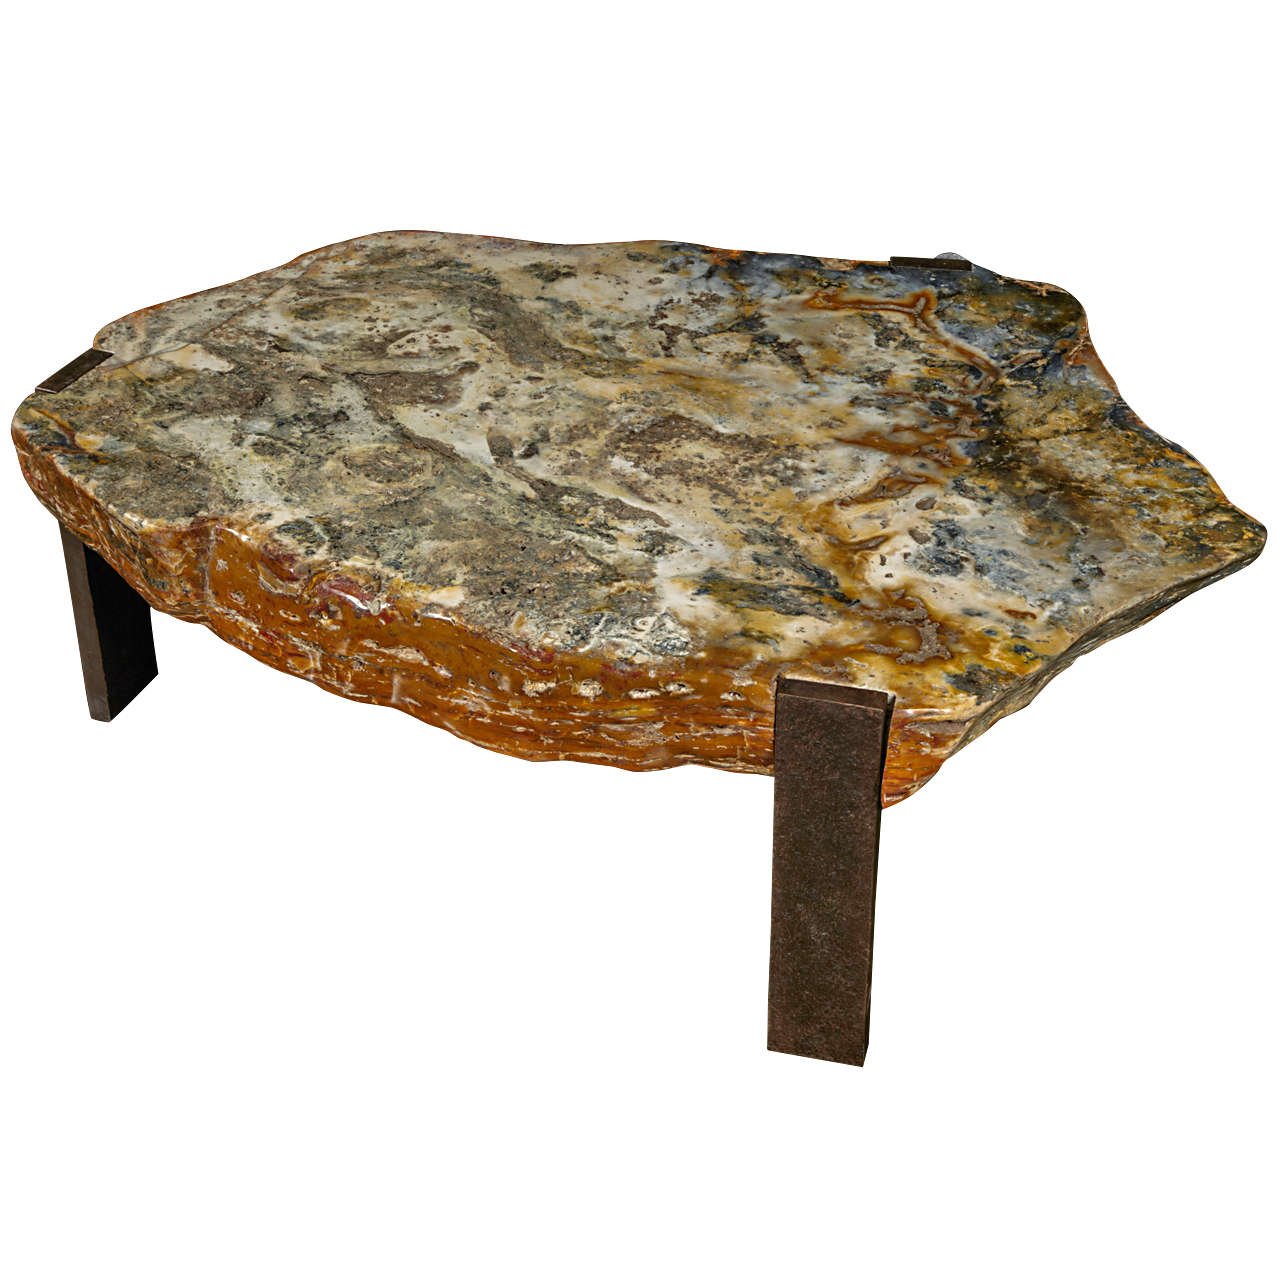 Ivory Stone Oval Coffee Table: Oval Coffee Table With Adged Agathe Stone Top At 1stdibs